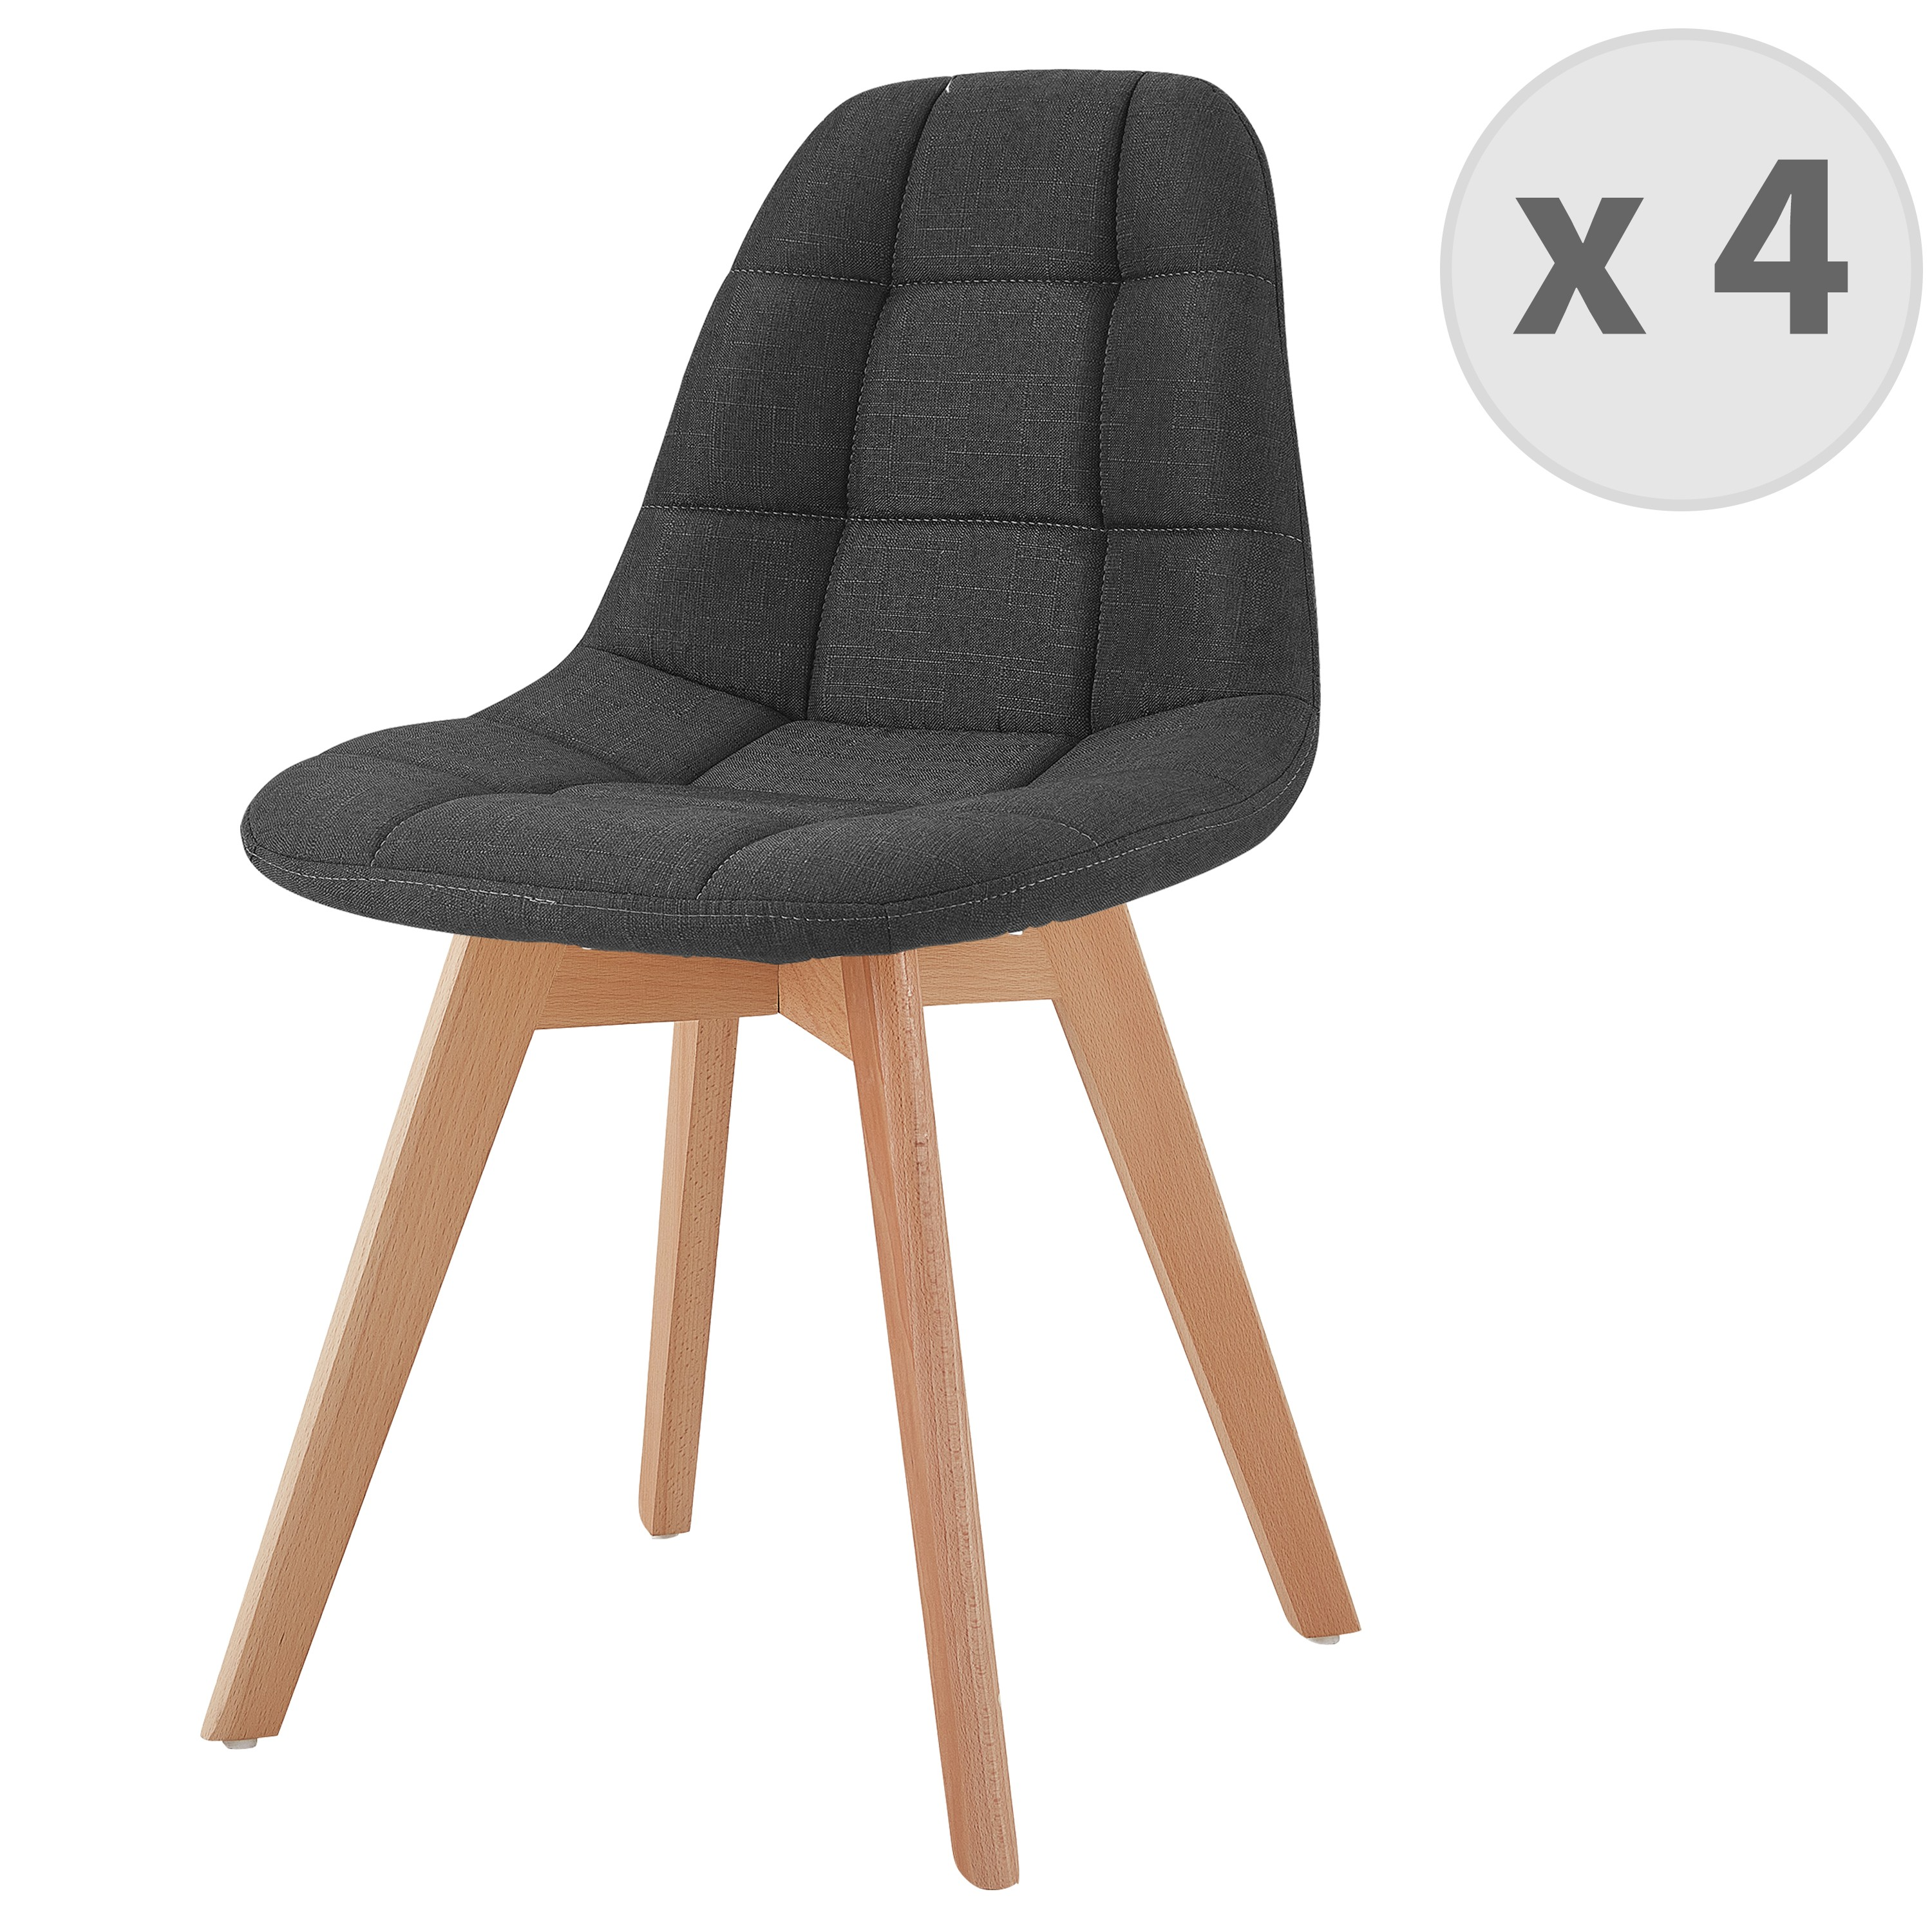 Chaise scandinave tissu anthracite pied hêtre (x4)